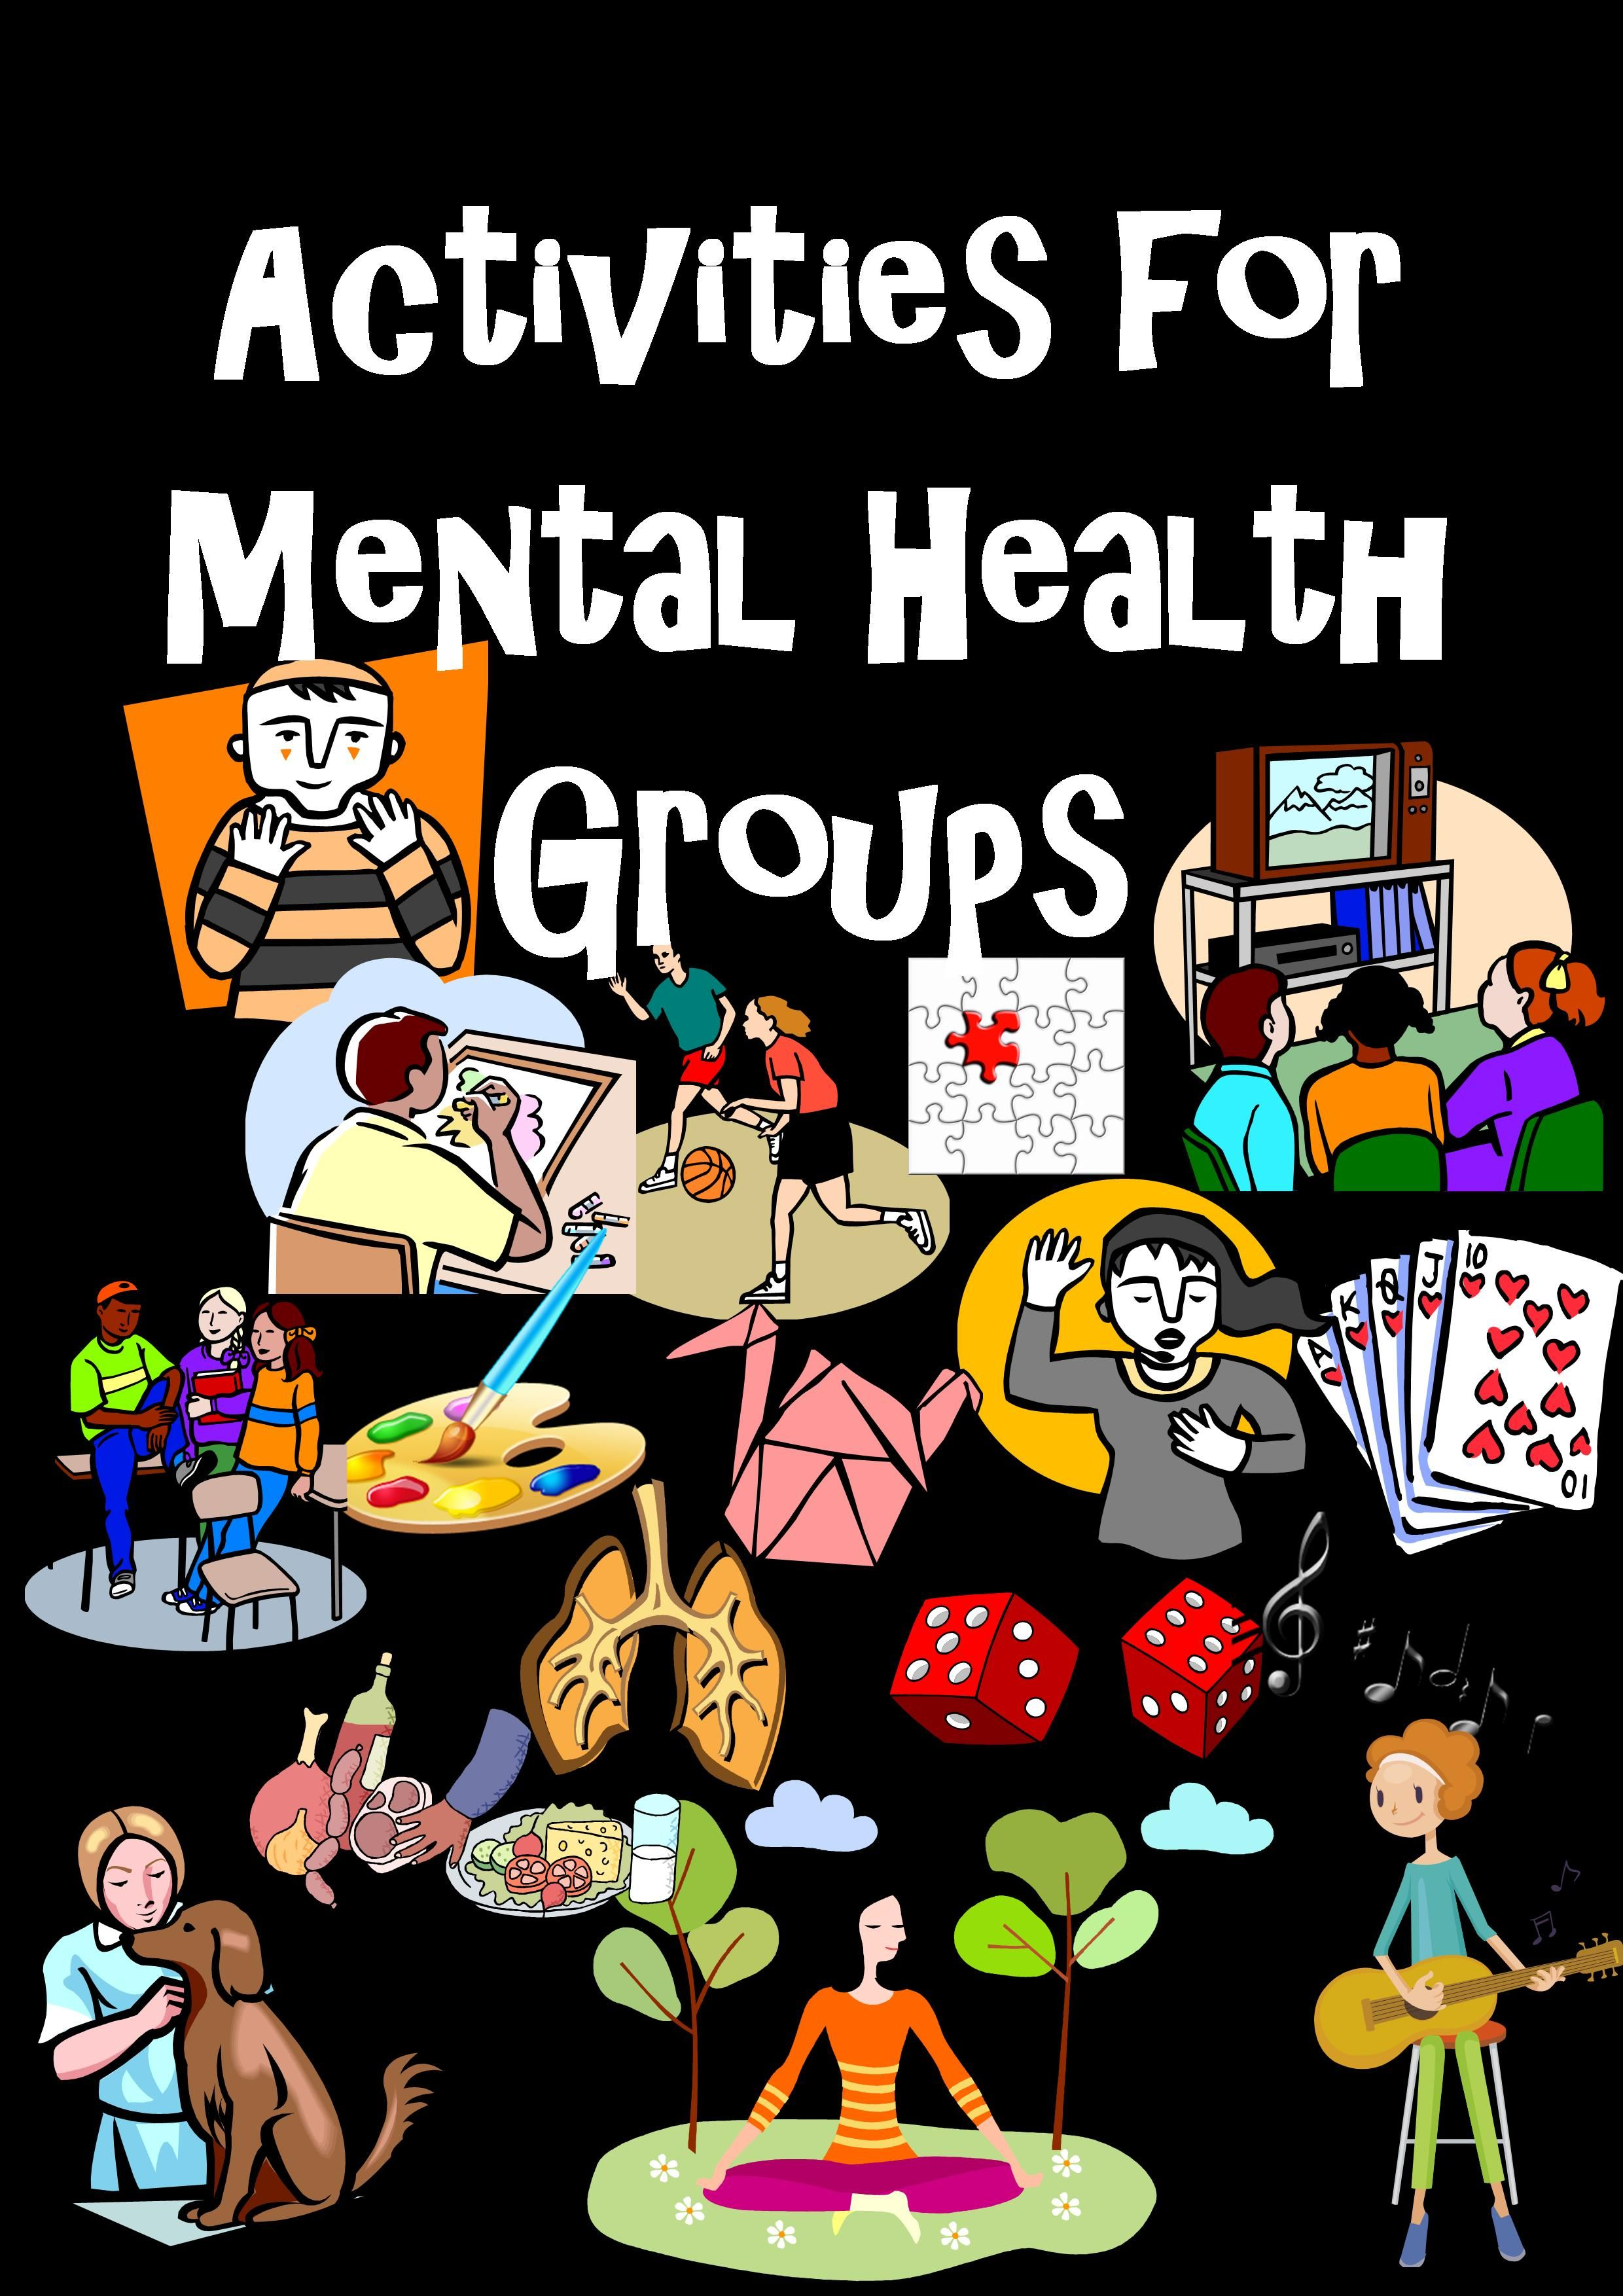 What are some examples of group activities?